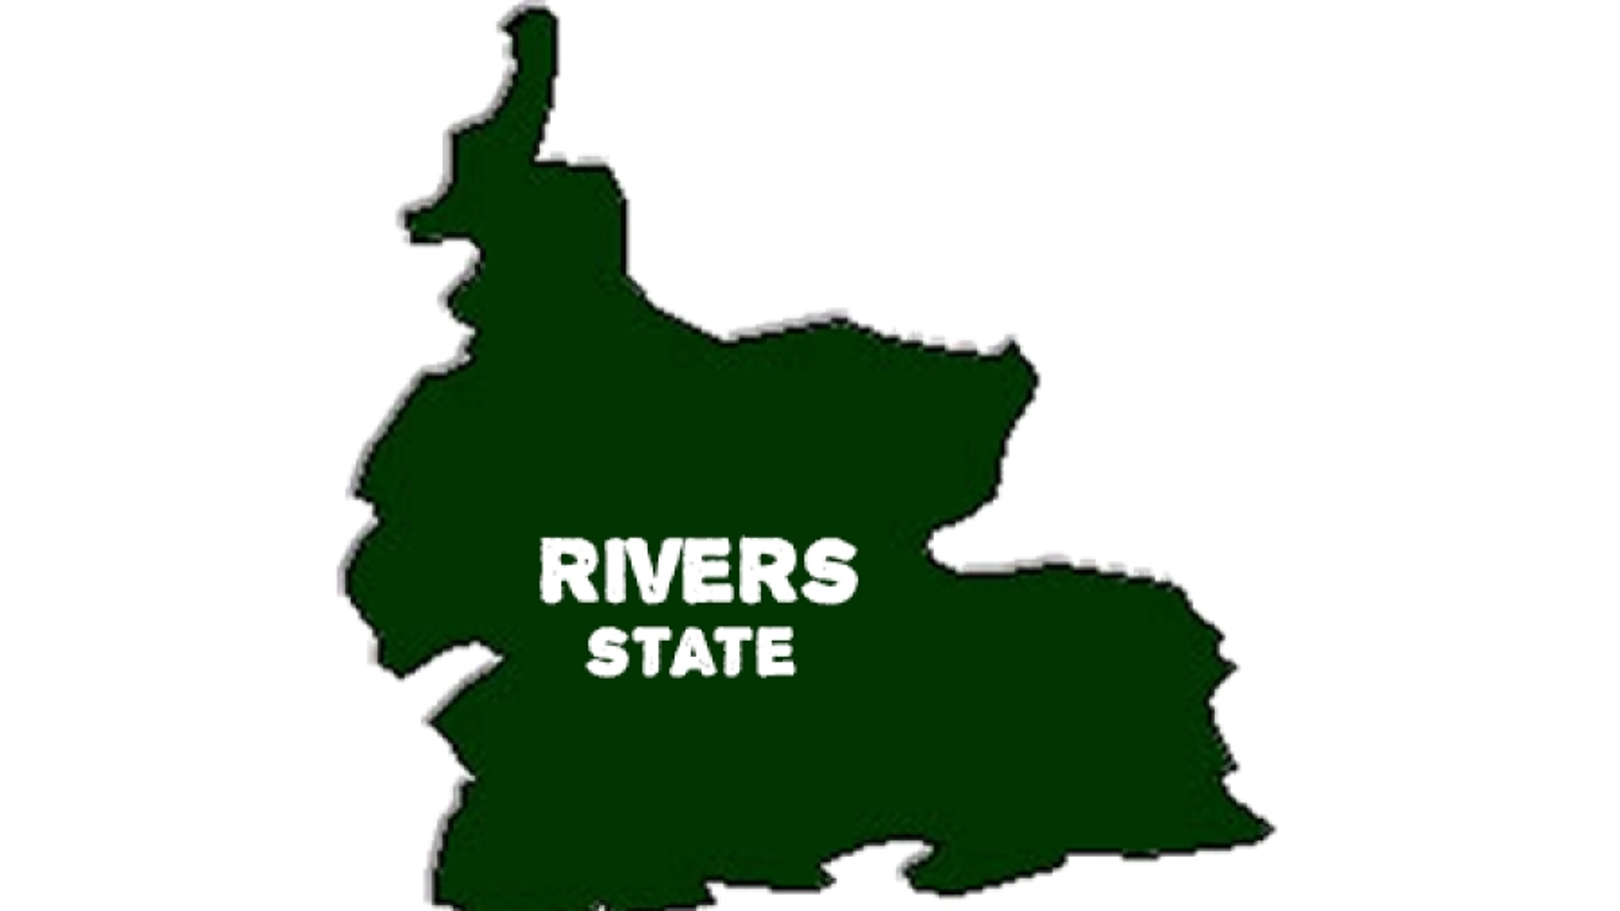 Protest as flood sacks 9 communities in Rivers